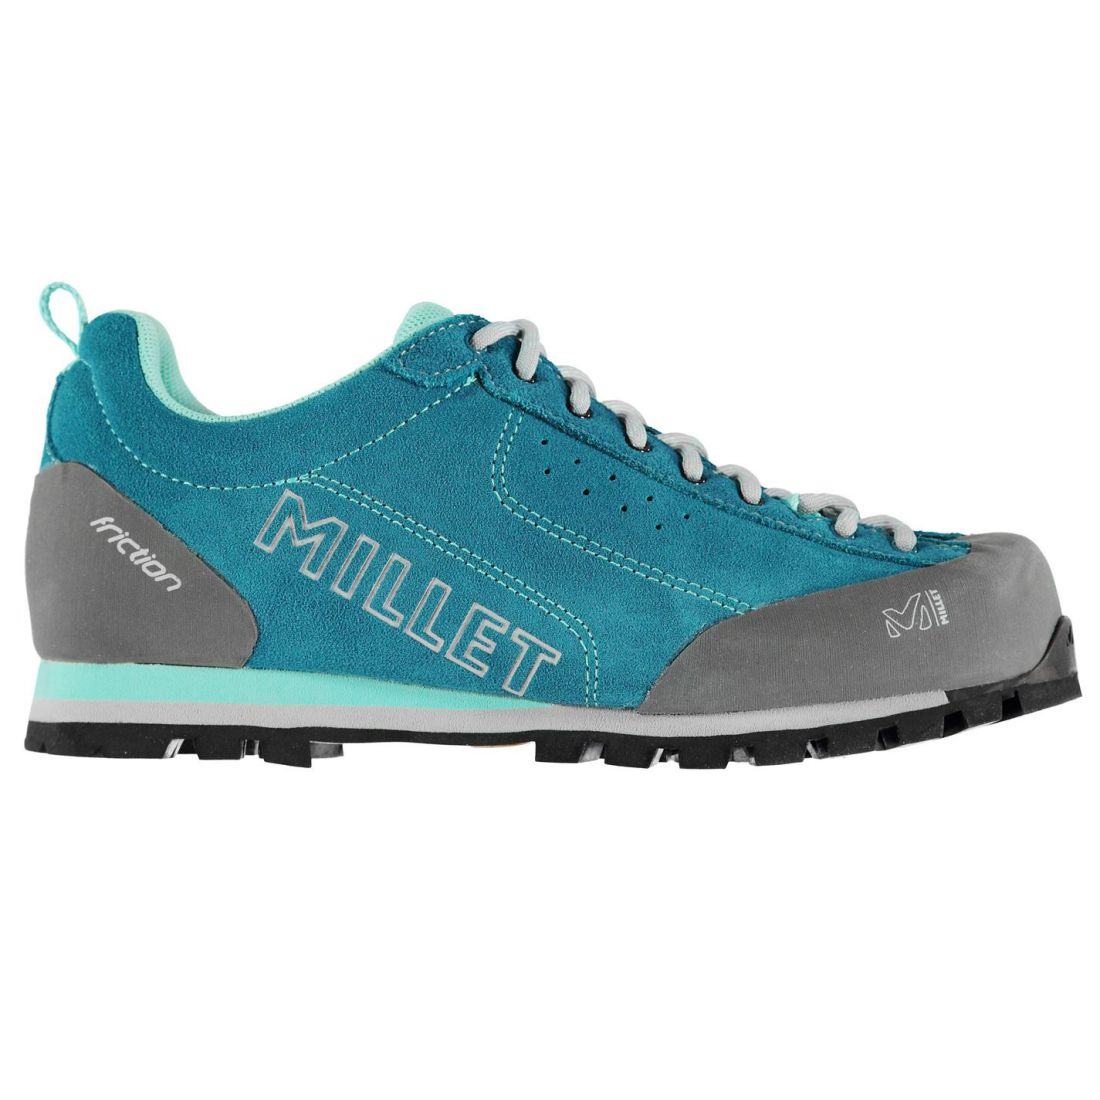 Millet Womens Friction Low Walking shoes Non Waterproof Lace Up Breathable